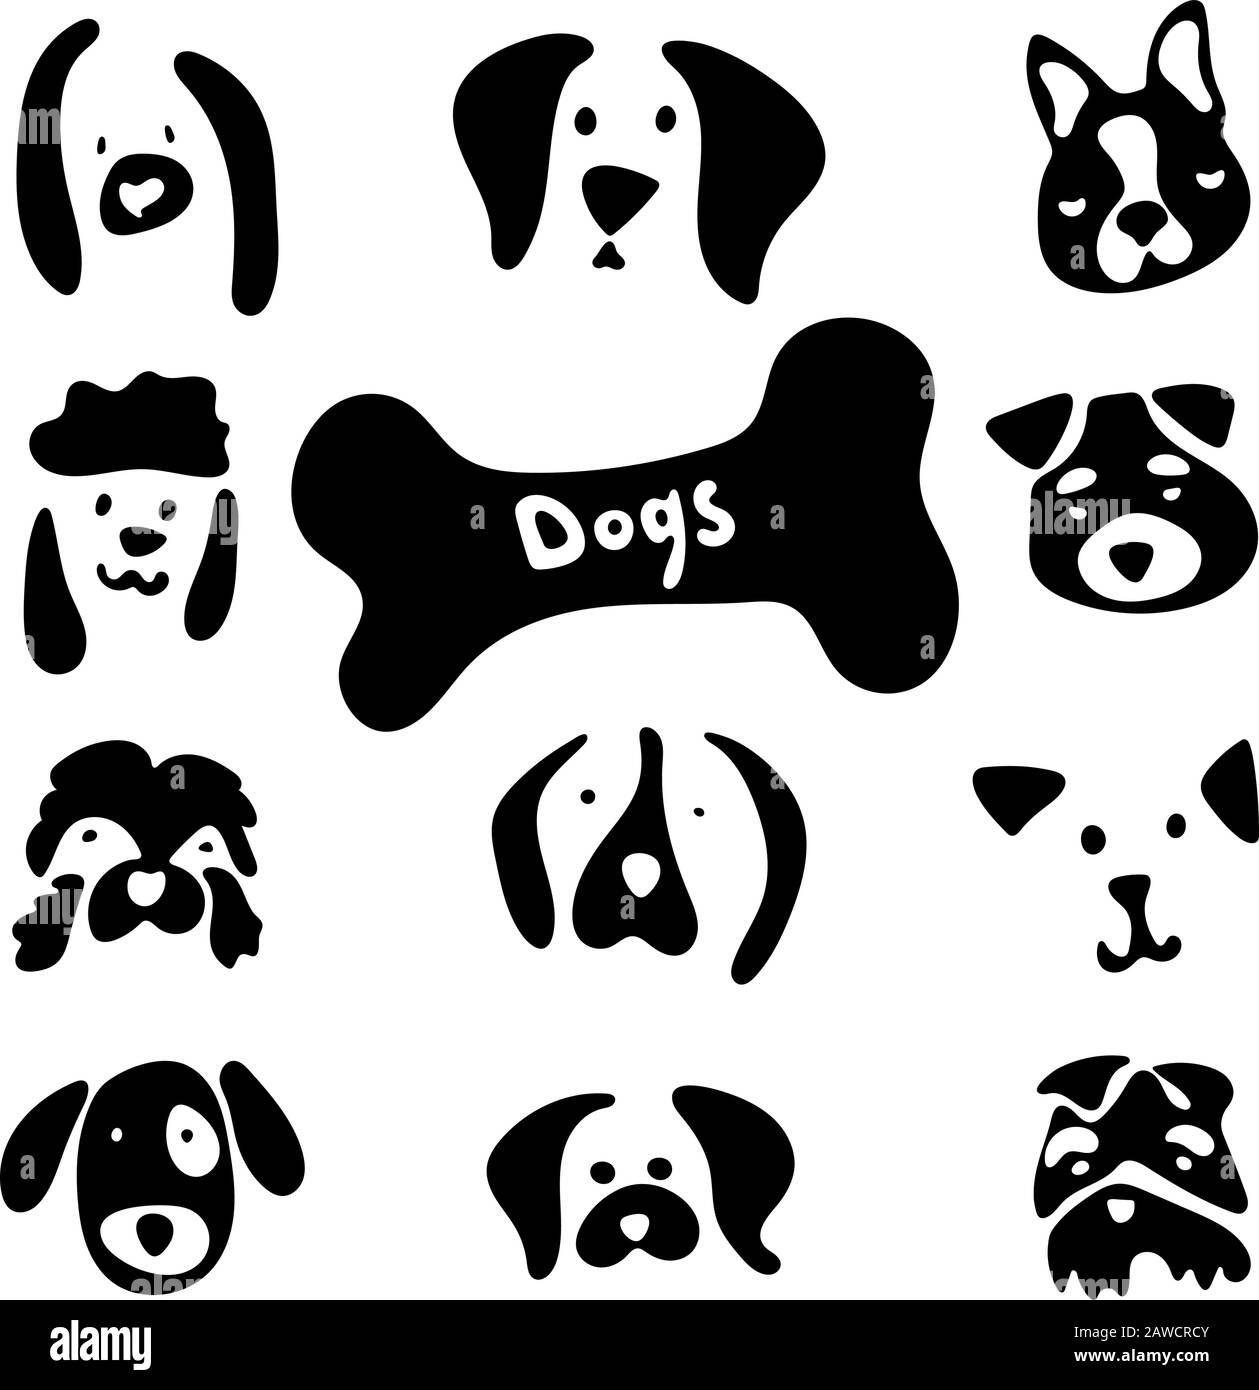 Dog Breed Stock Set With Cartoon Emotions And Lovely Faces Vector Images Of Dogs Head On White Background For Your Design Clipart Stock Black And Stock Vector Image Art Alamy